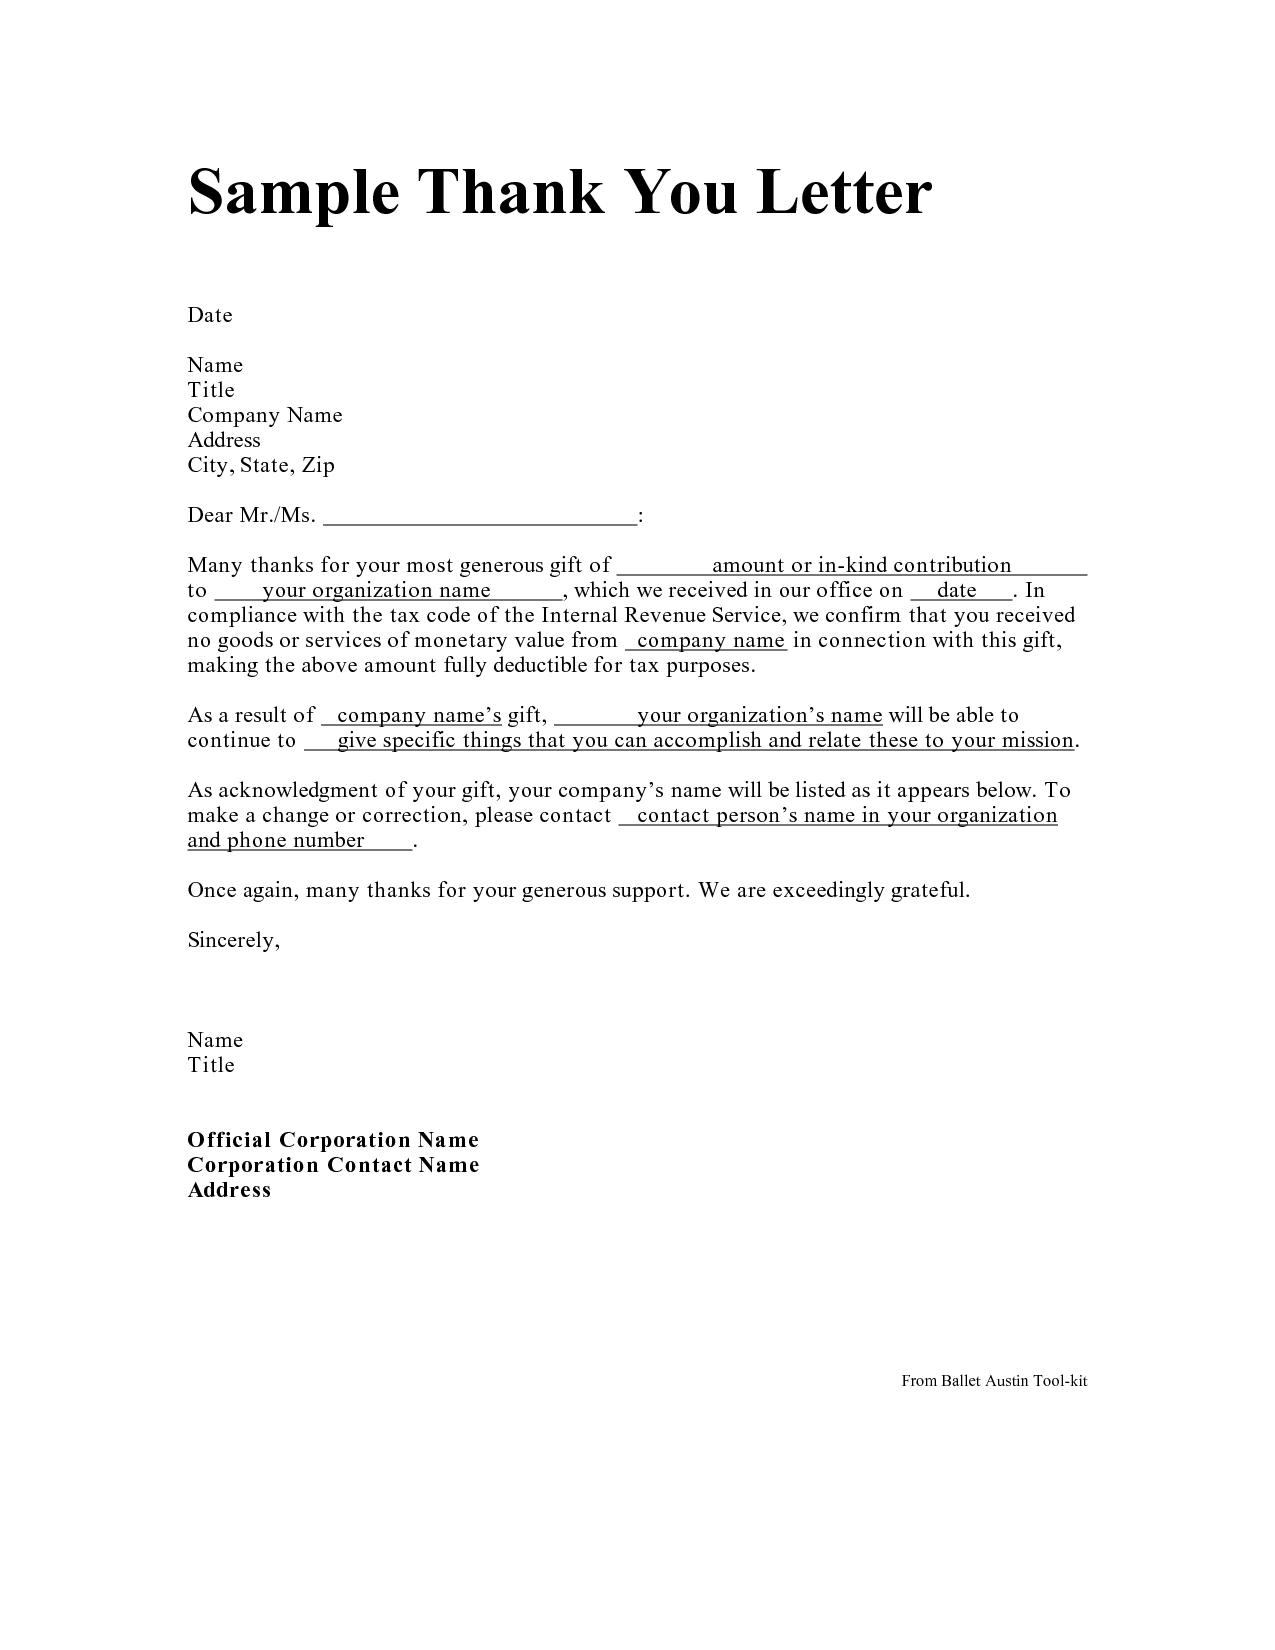 Grant Thank You Letter Template - Personal Thank You Letter Personal Thank You Letter Samples